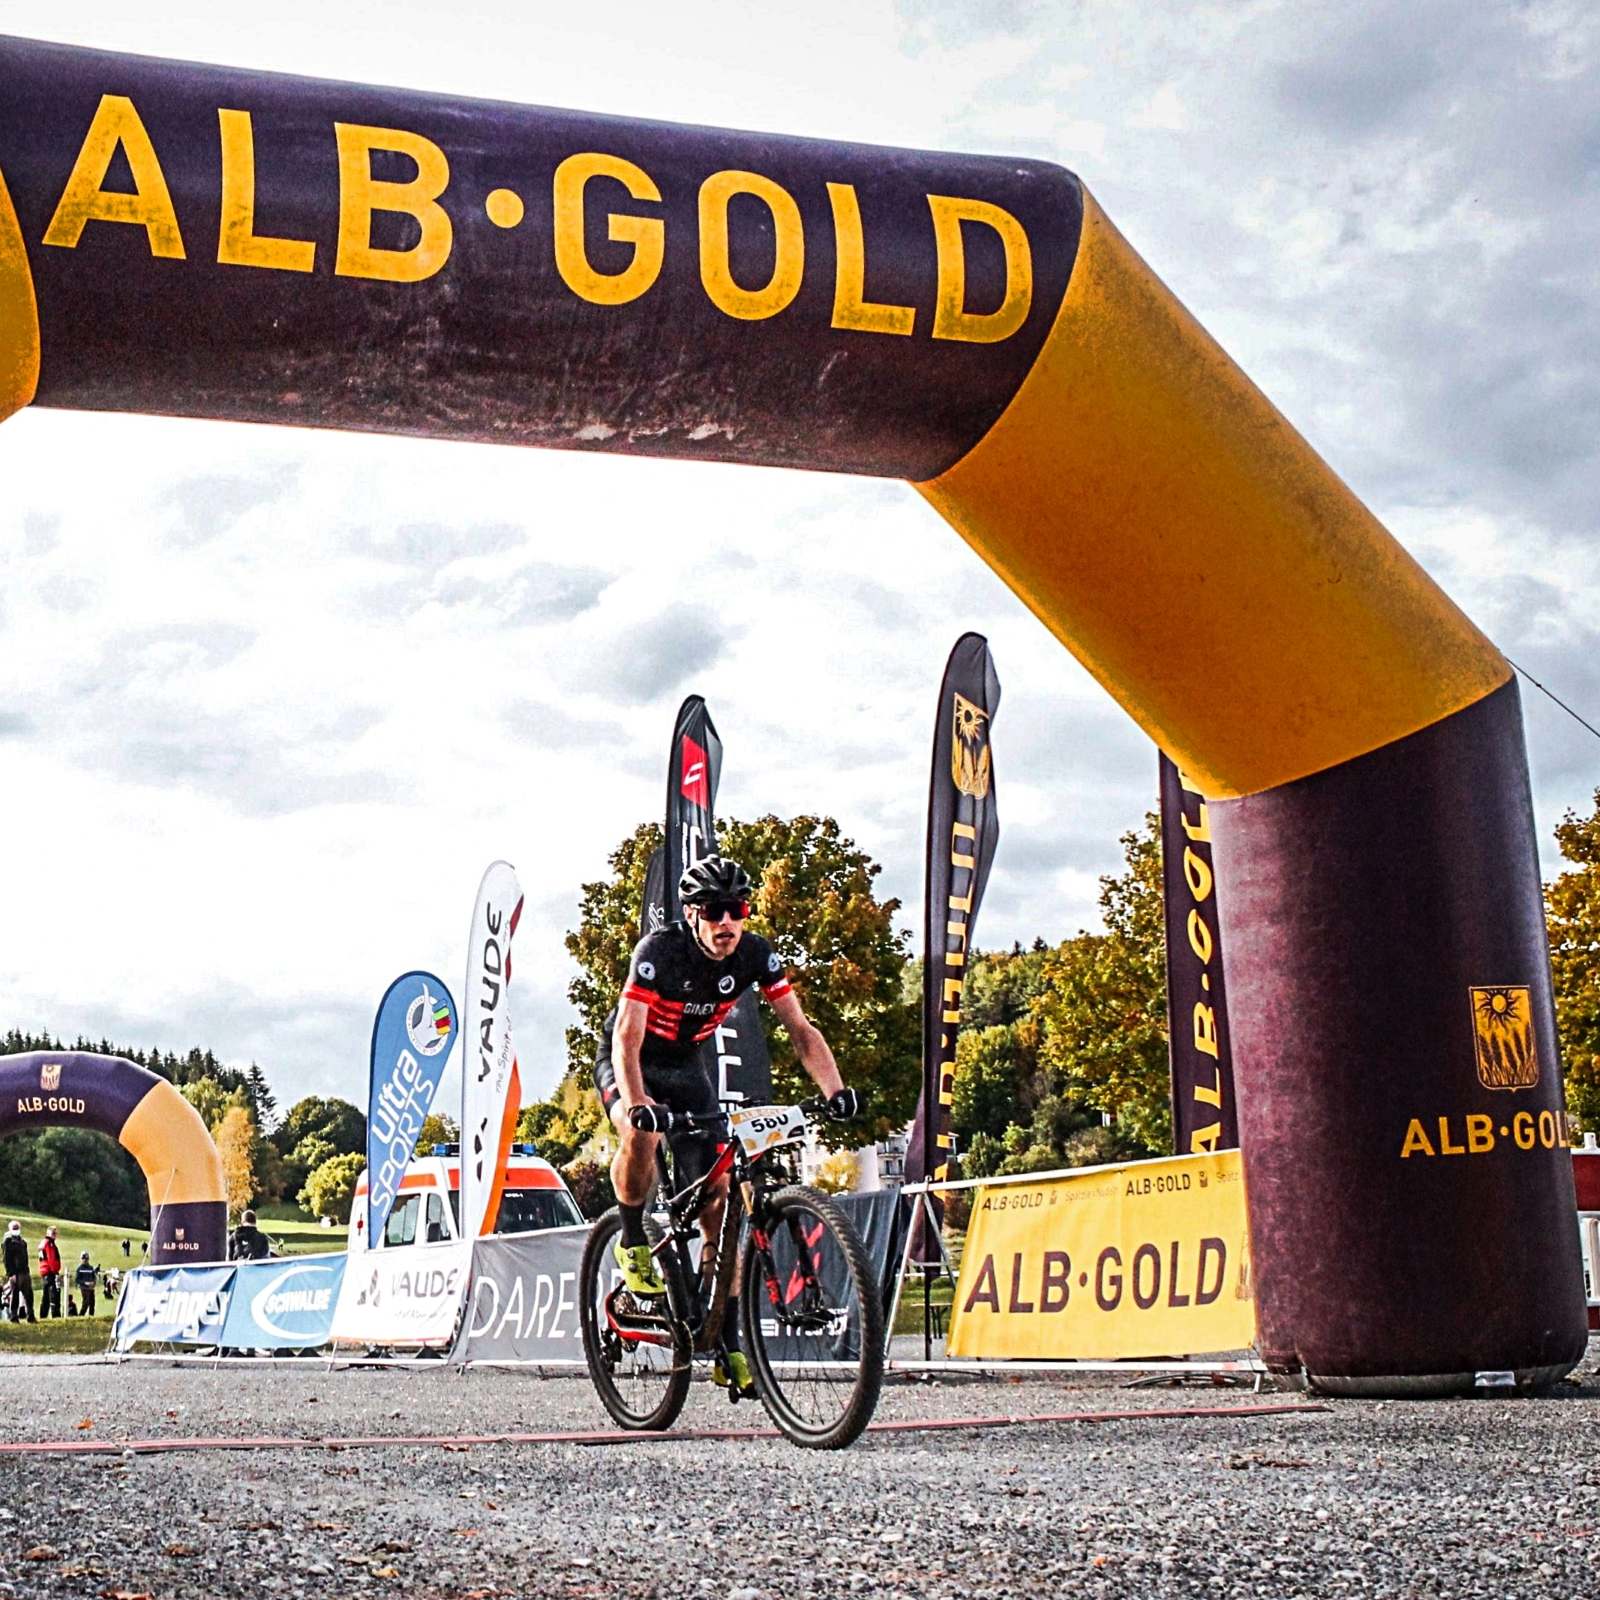 ALB-GOLD TROPHY